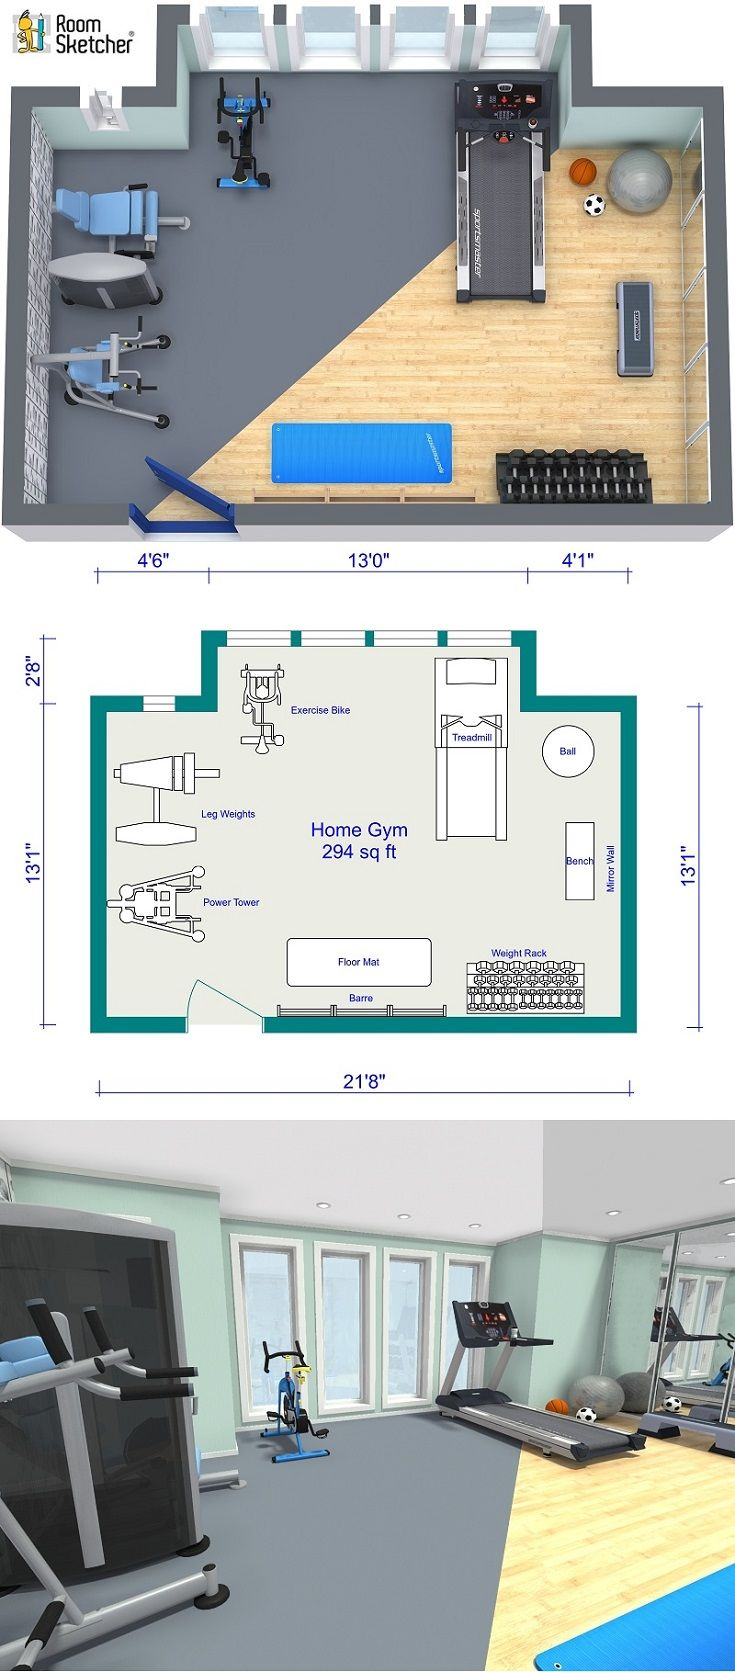 design a room with roomsketcher in 2018 architecture pinterest haus fitnessstudio zu. Black Bedroom Furniture Sets. Home Design Ideas